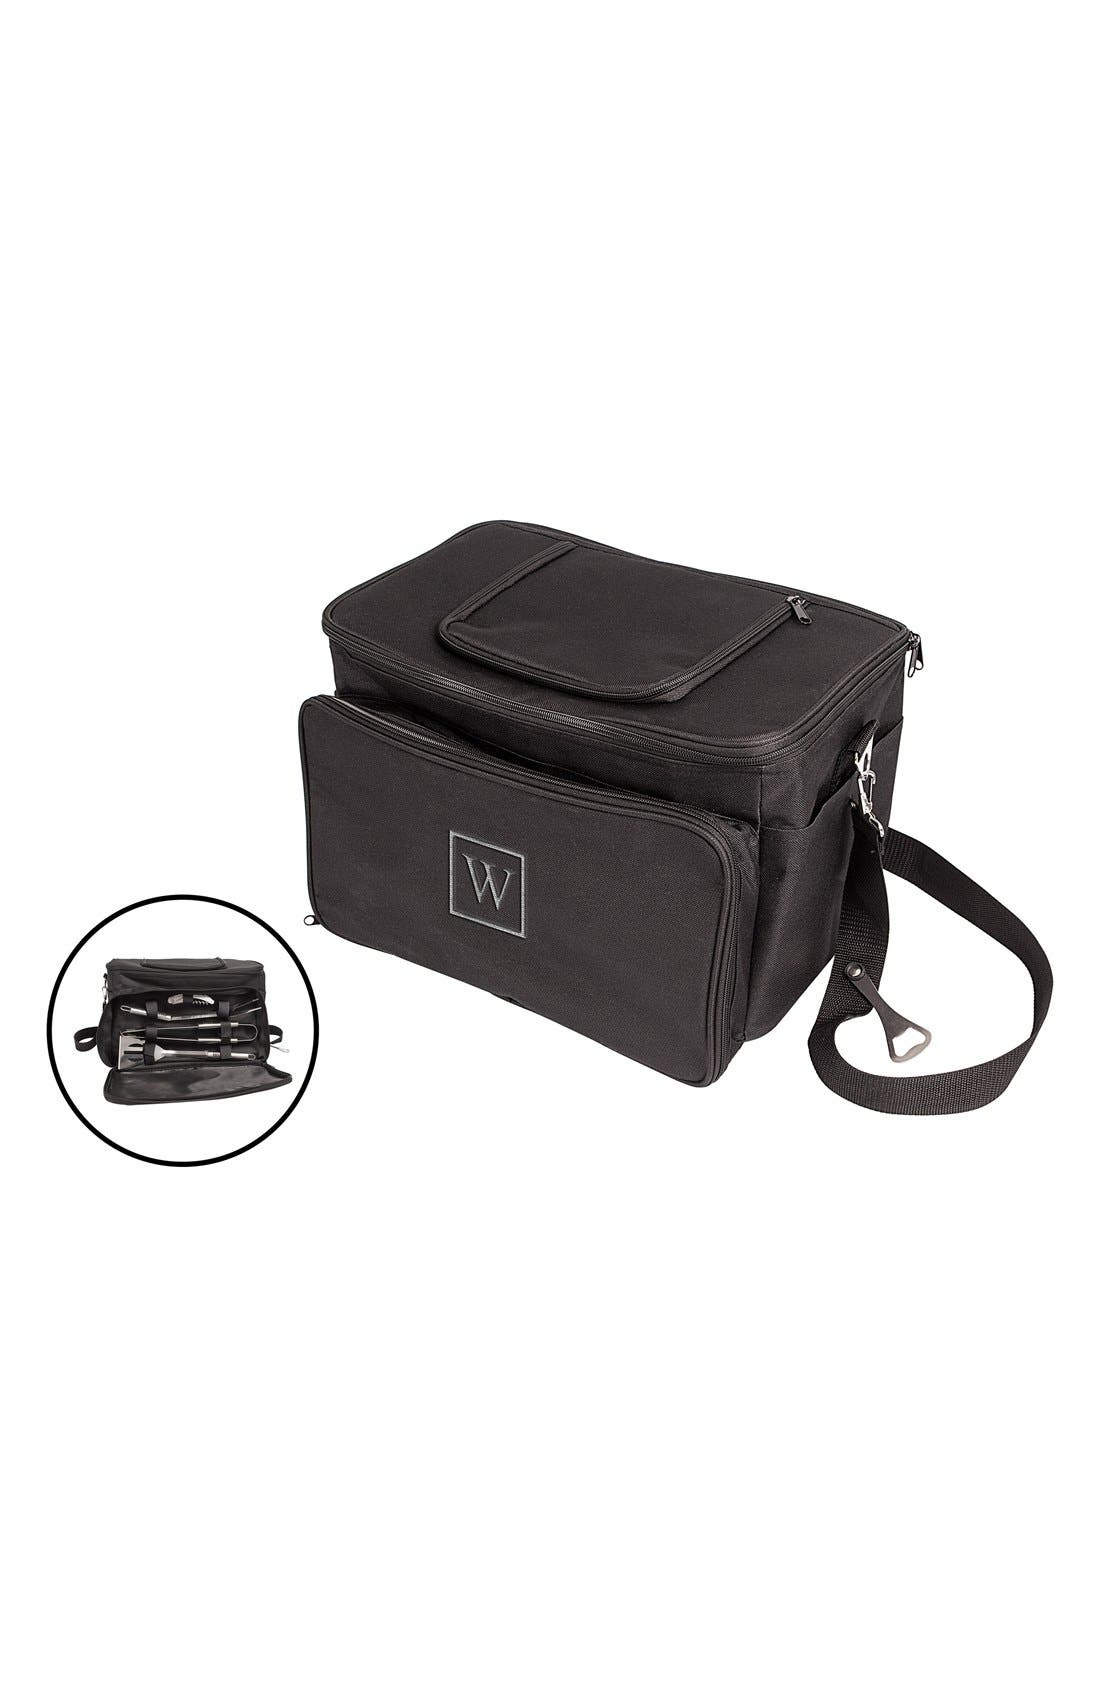 Cathy's Concepts Monogram Tailgate Cooler with Grilling Tools